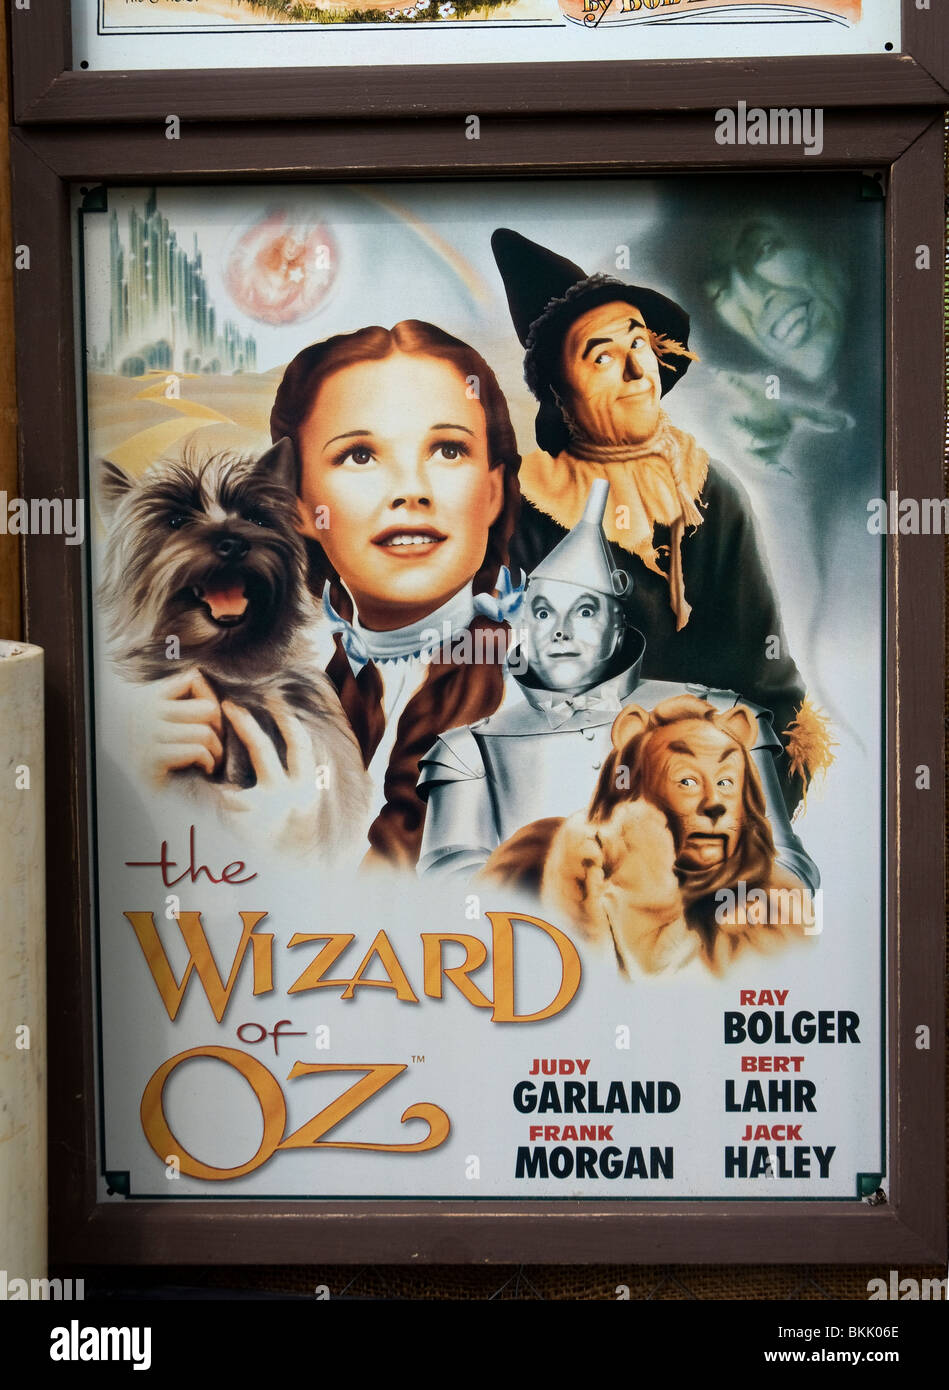 Pioneer Days High Springs Florida booth selling items depicting Americana the Wizard of Oz movie poster - Stock Image